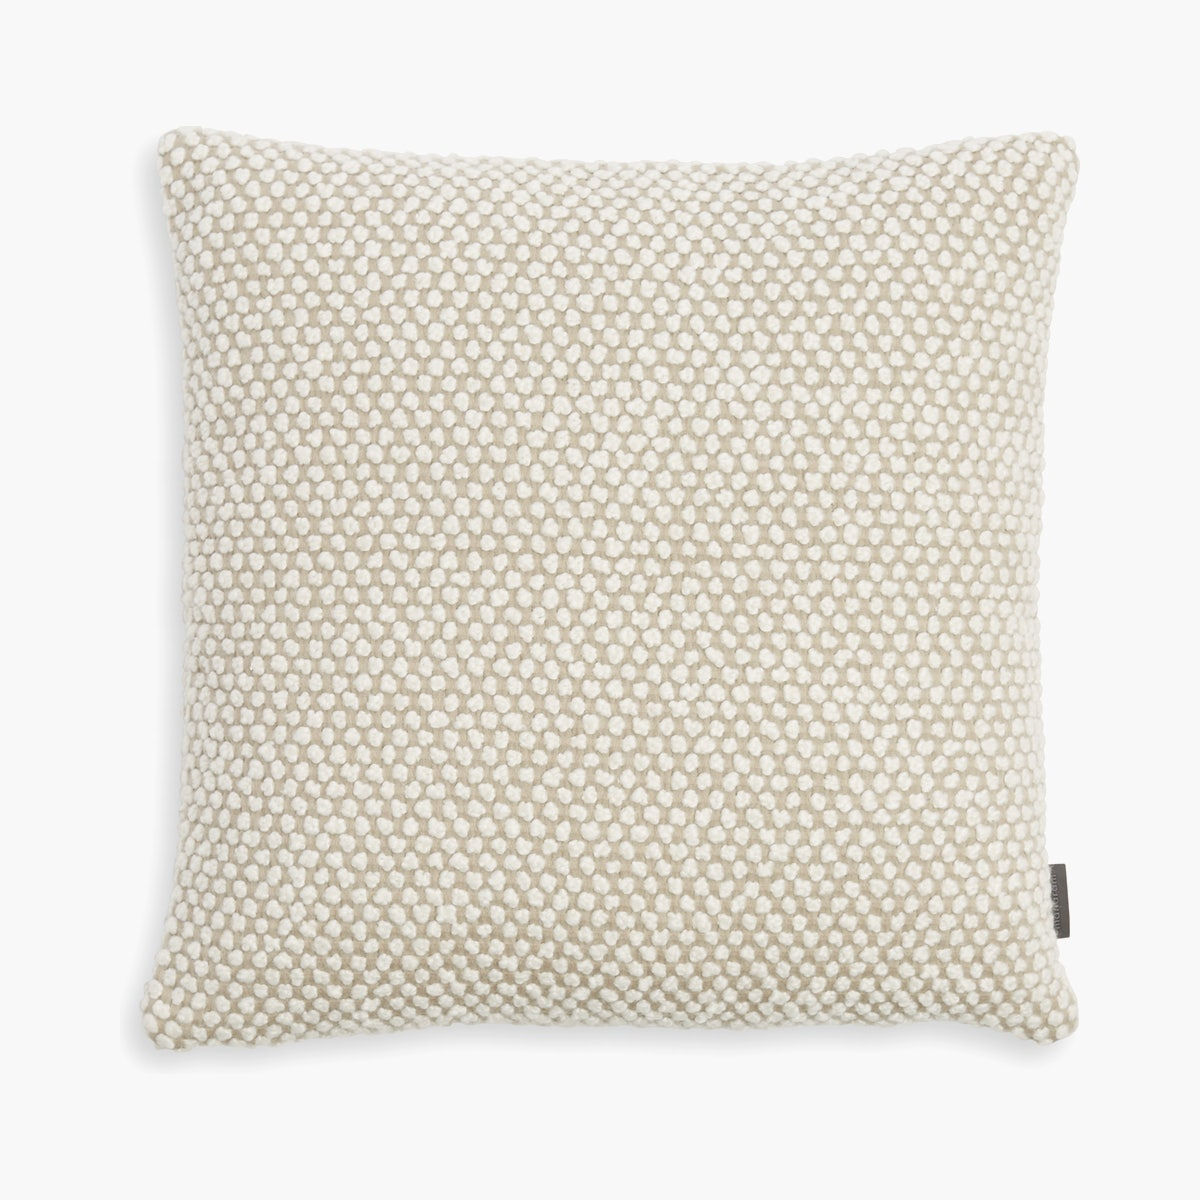 Maharam Pillow - Huddle